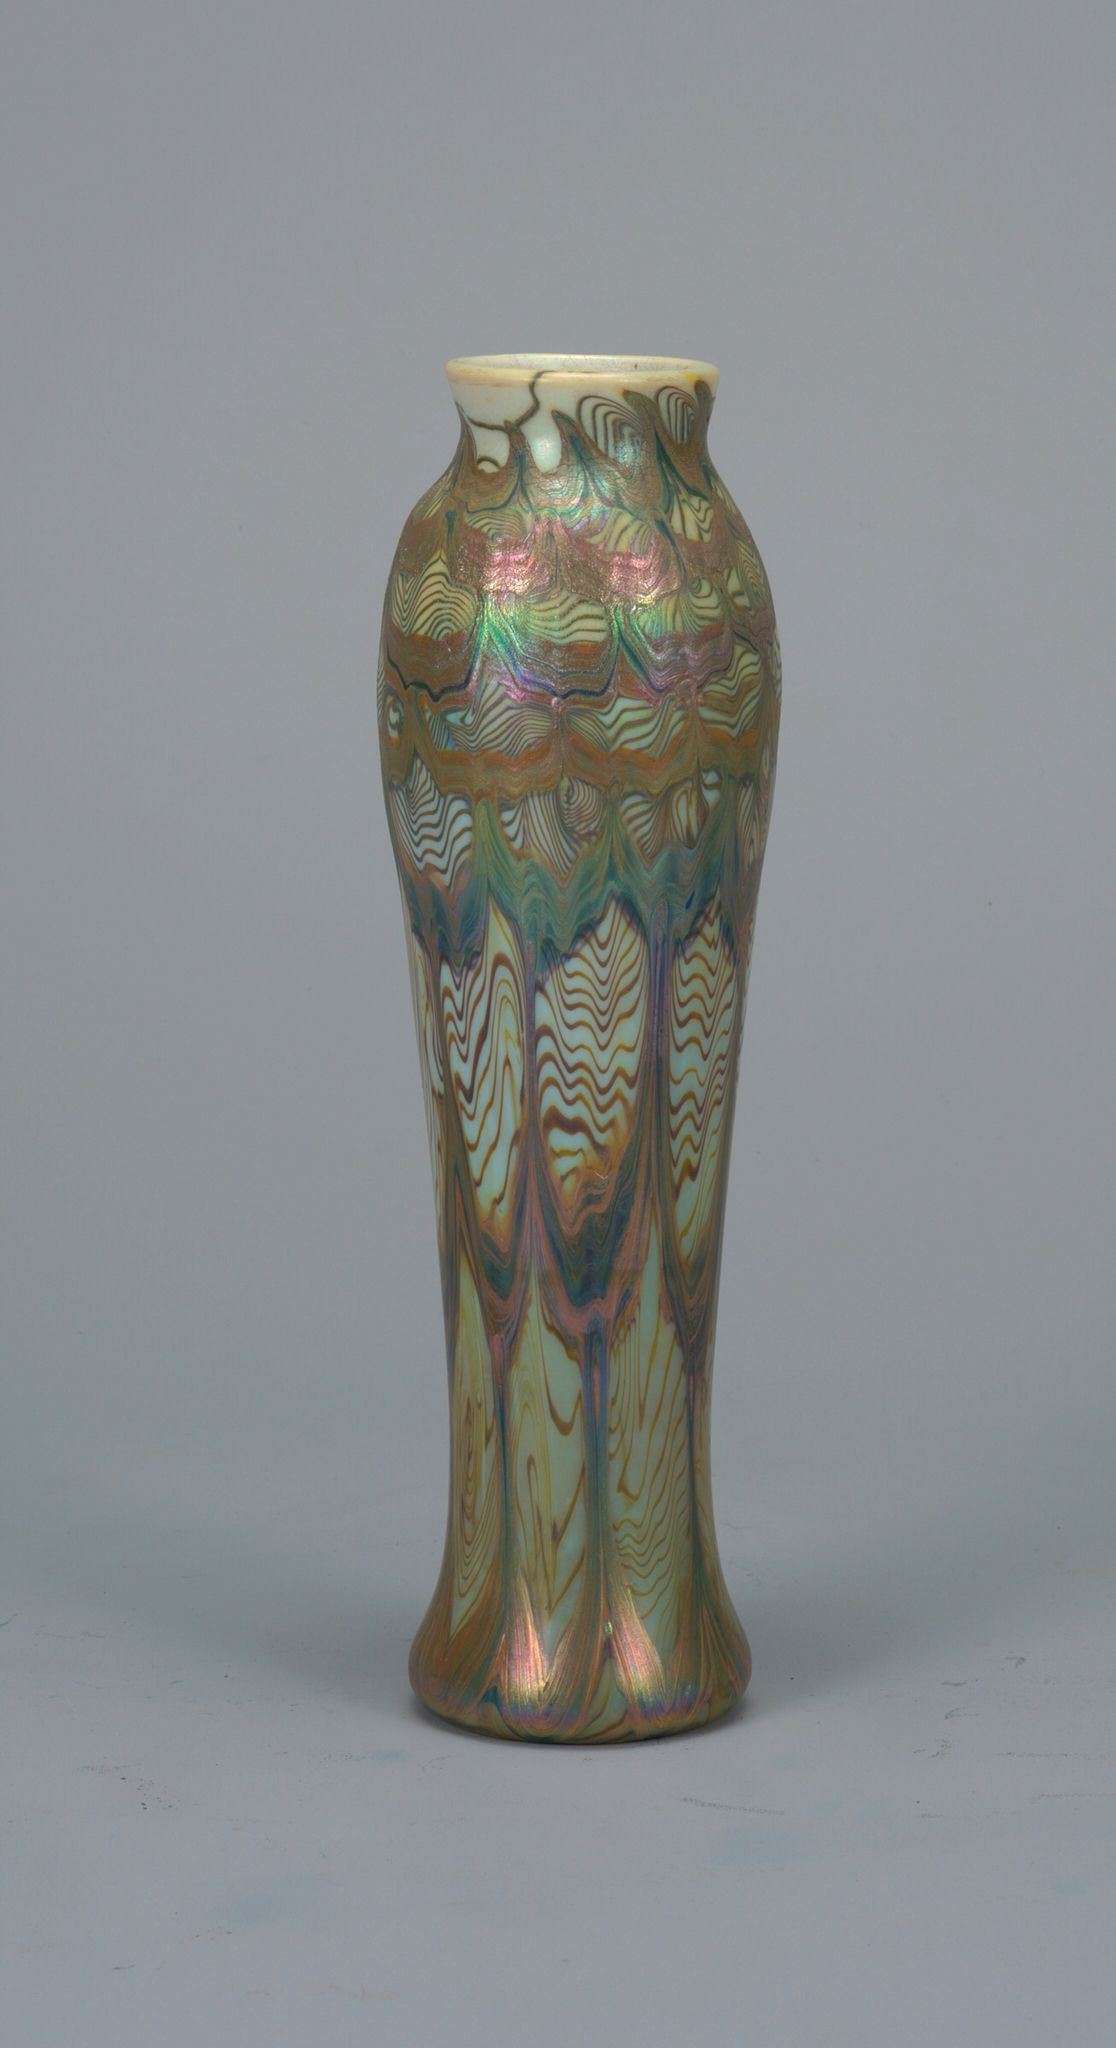 glass vase manufacturers of l c tiffany favrile glass vase l c tiffanytiffany studios in l c tiffany favrile glass vase